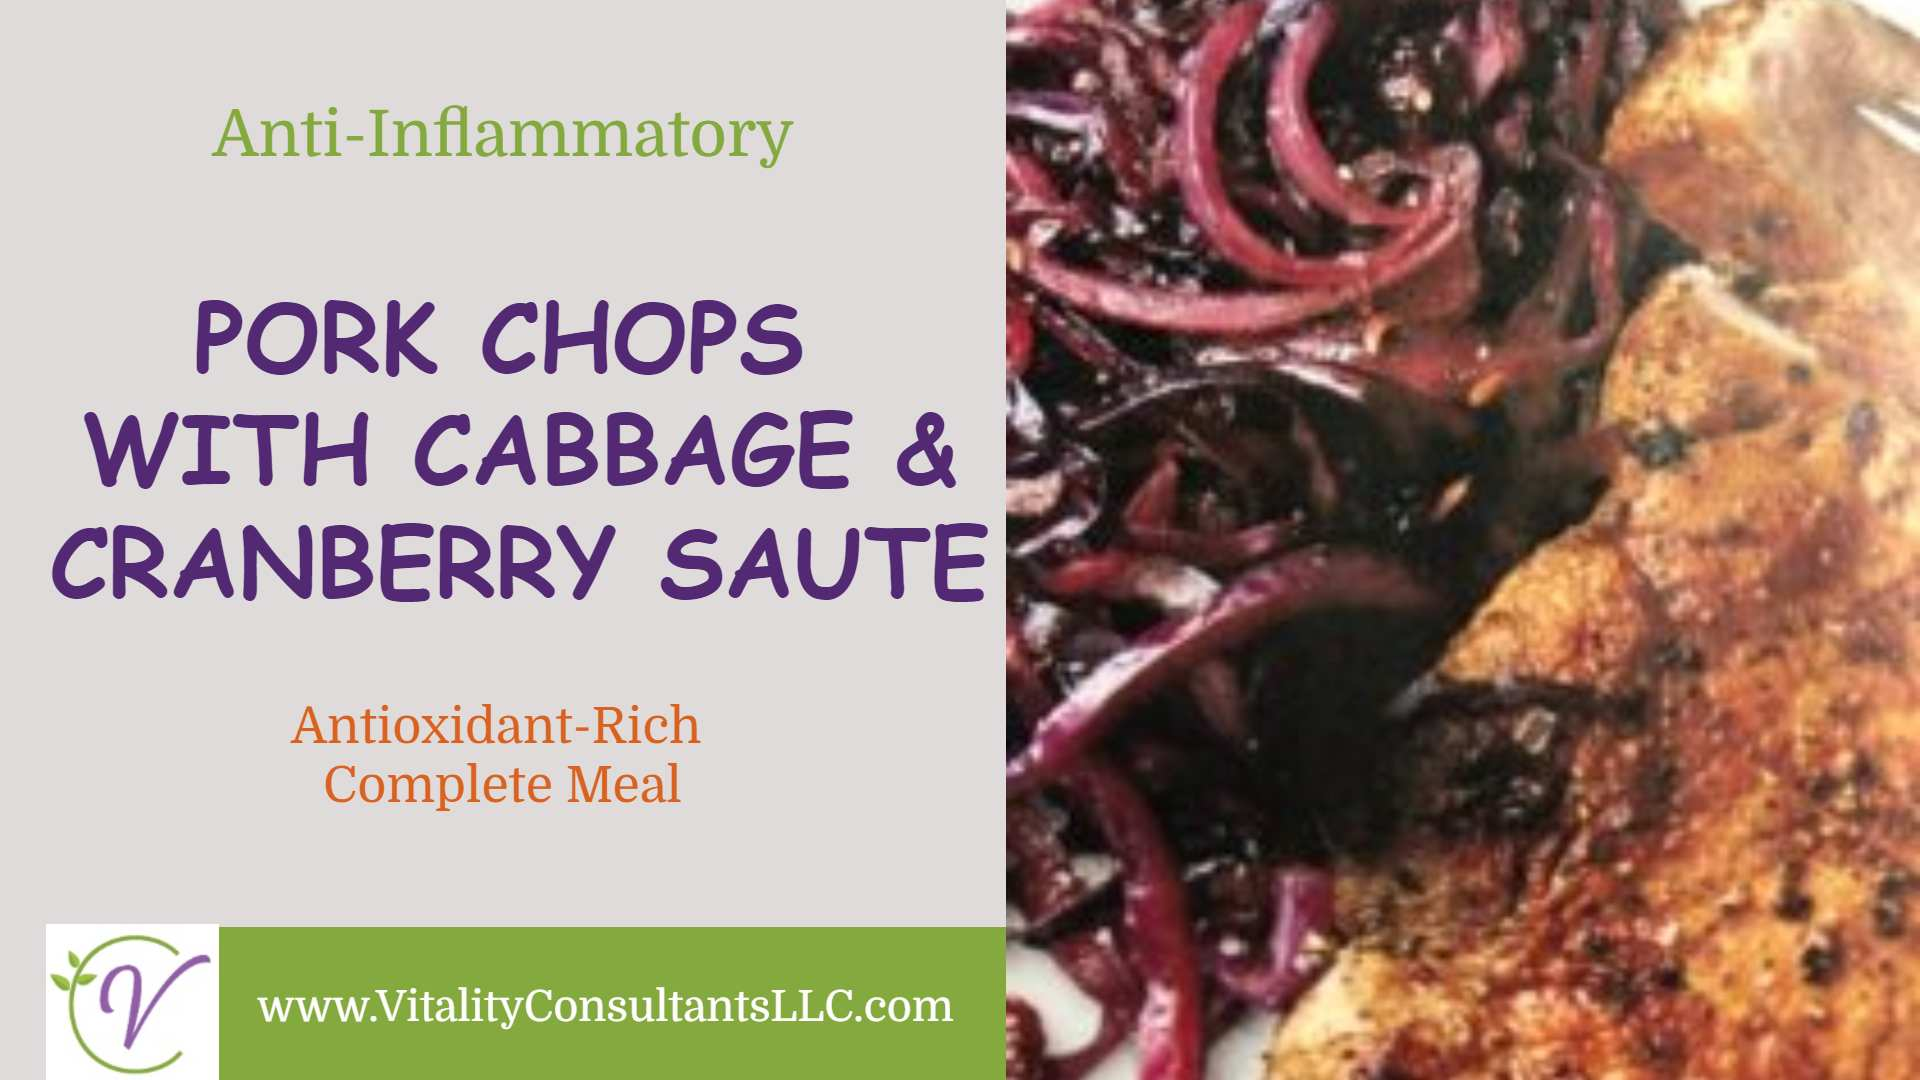 Pork Chops with Cabbage & Cranberry